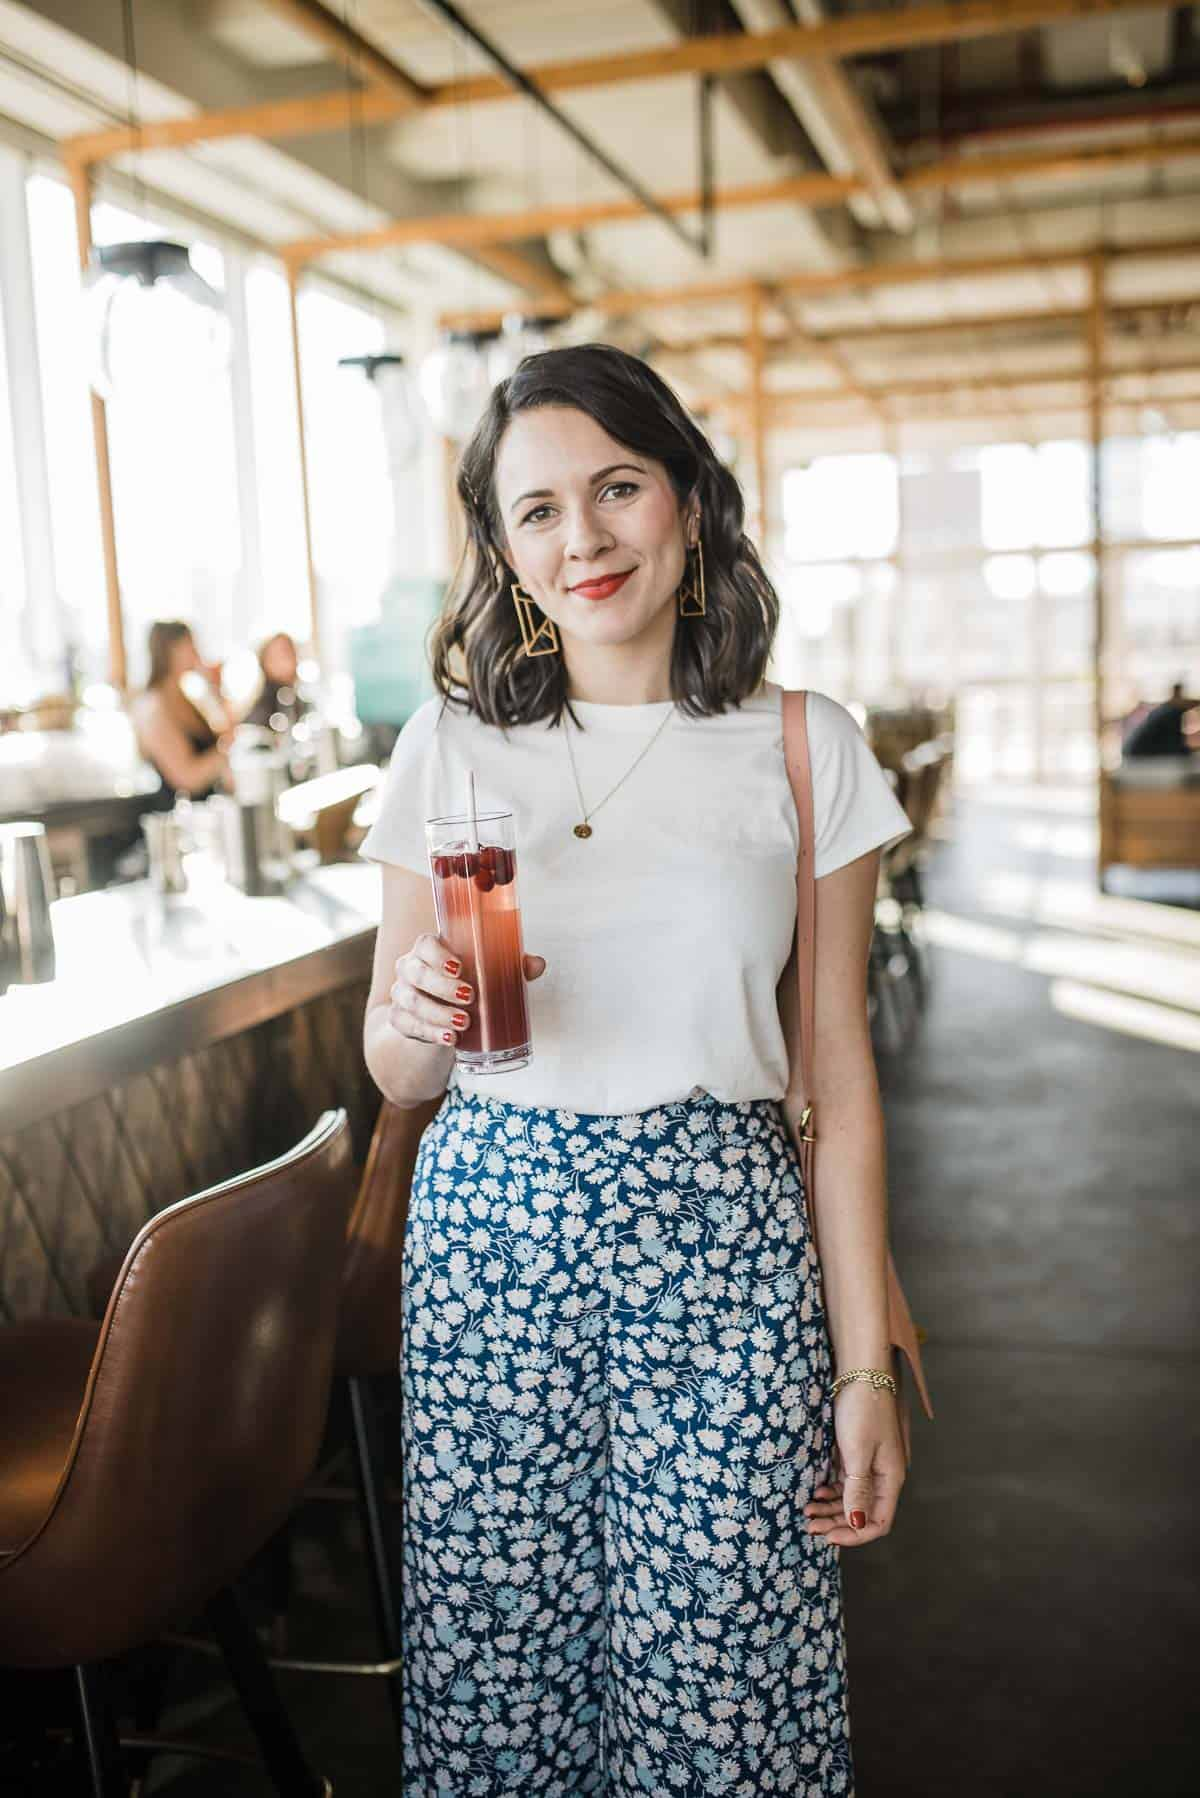 Jessica Camerata is wearing blue floral crop pants and white tee